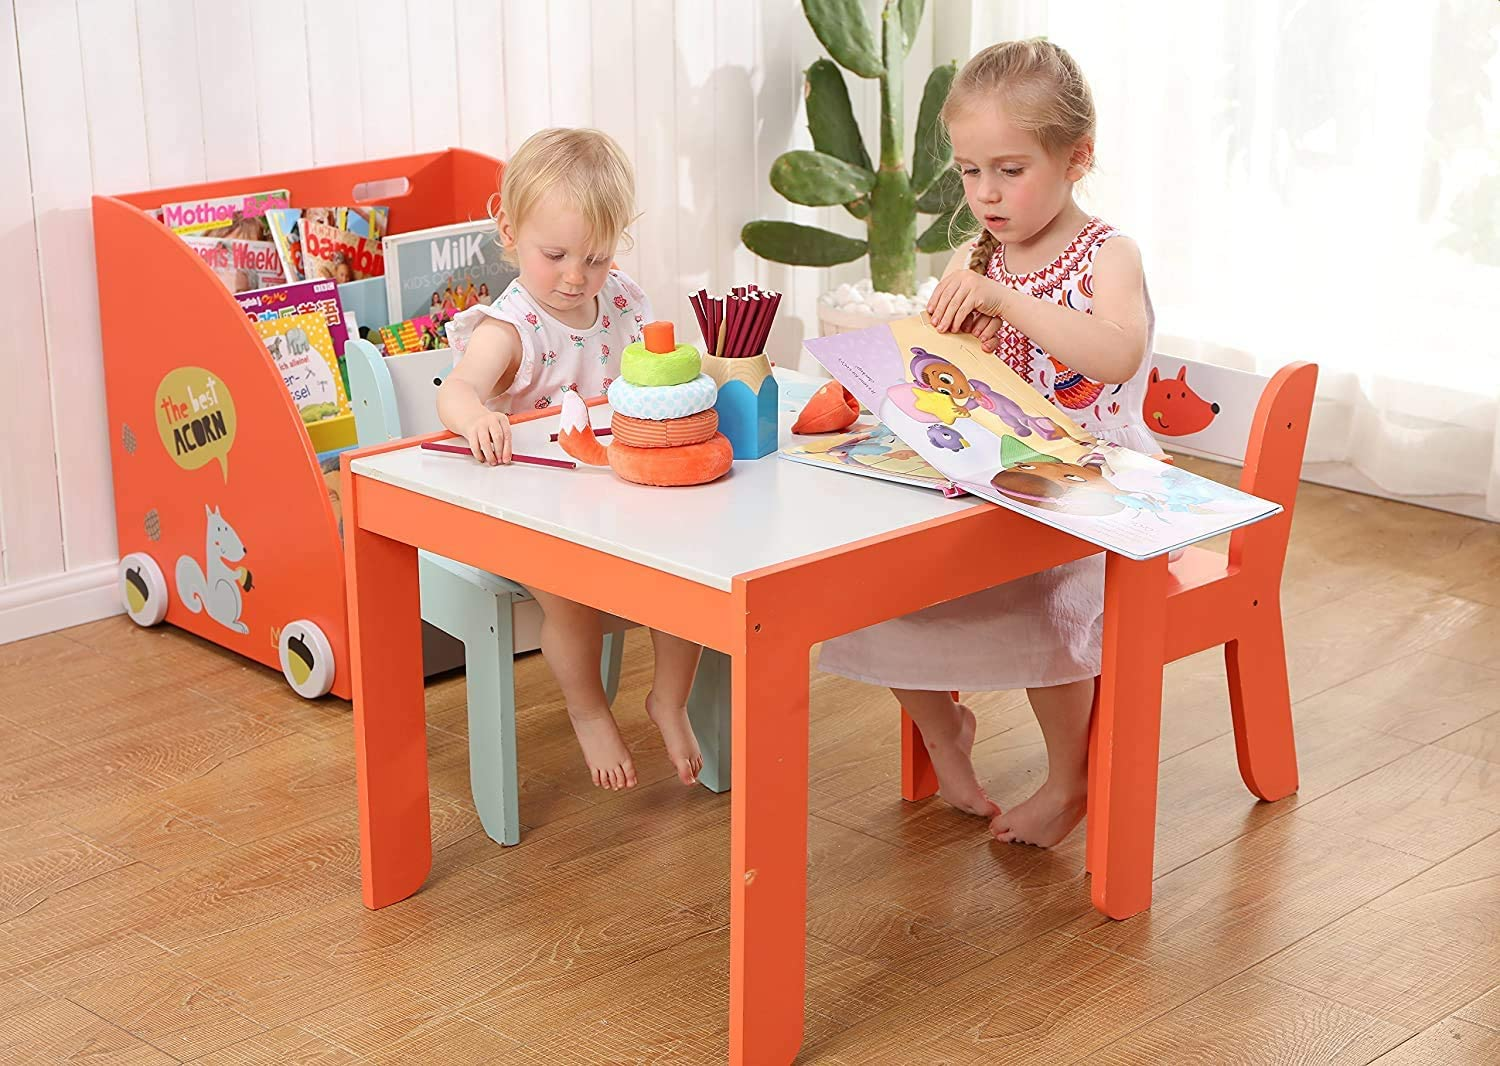 labebe-Kids Table and Chairs,Wooden Activity Table Sets for Children,Baby Toddler //Play Table// Small Table and Chair for 1-5 Year Old,White Fox